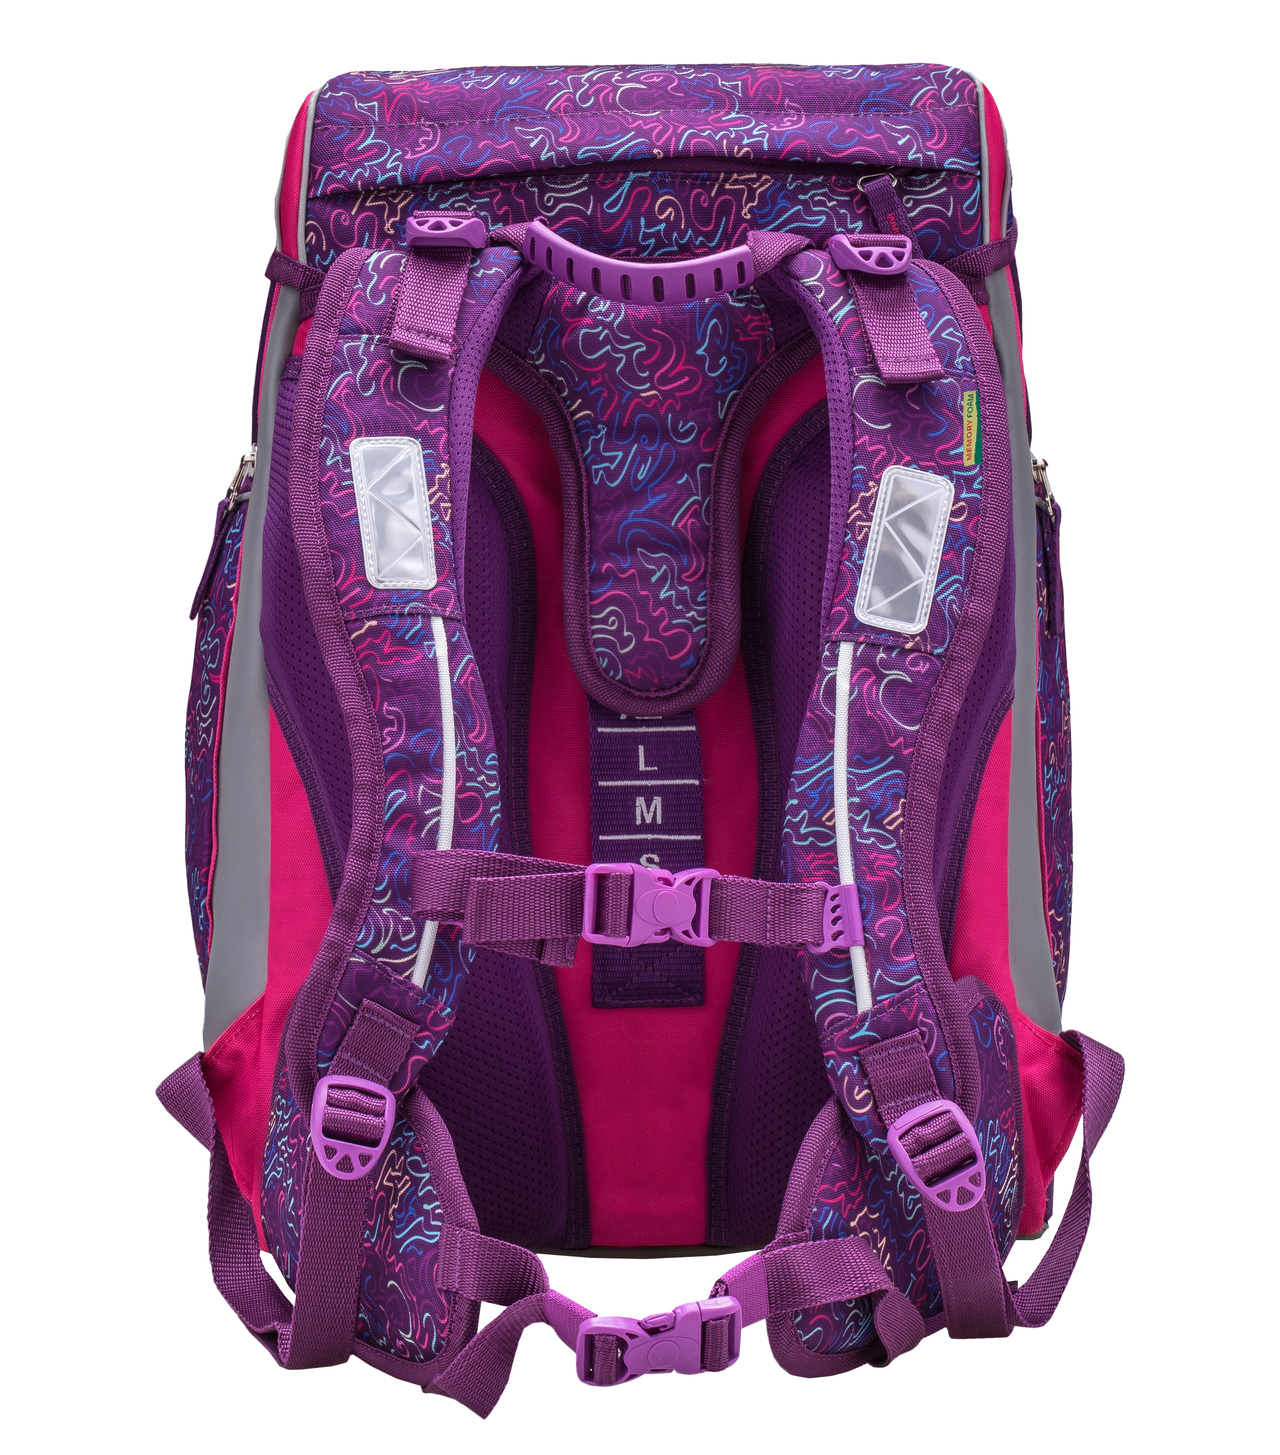 Ранец-рюкзак Belmil Comfy Pack 405-11/683 цвет Pink & Purple Harmony+ дождевик, - фото 5